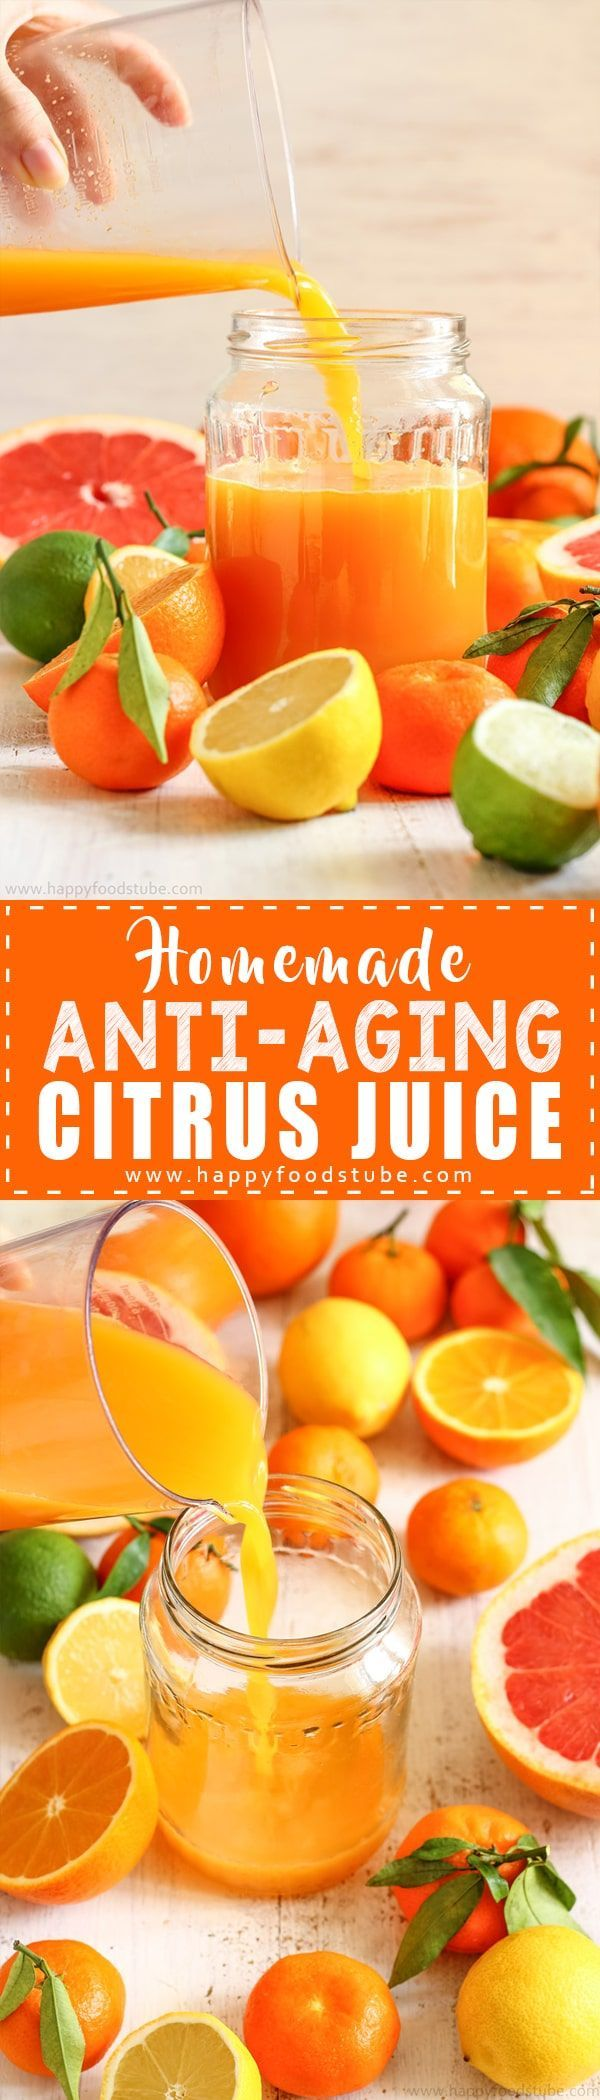 Reduce wrinkles with this Homemade Anti-Aging Citrus Juice Recipe. Vitamin C rich juice helps reduce aging signs and maintain healthy skin via @happyfoodstube